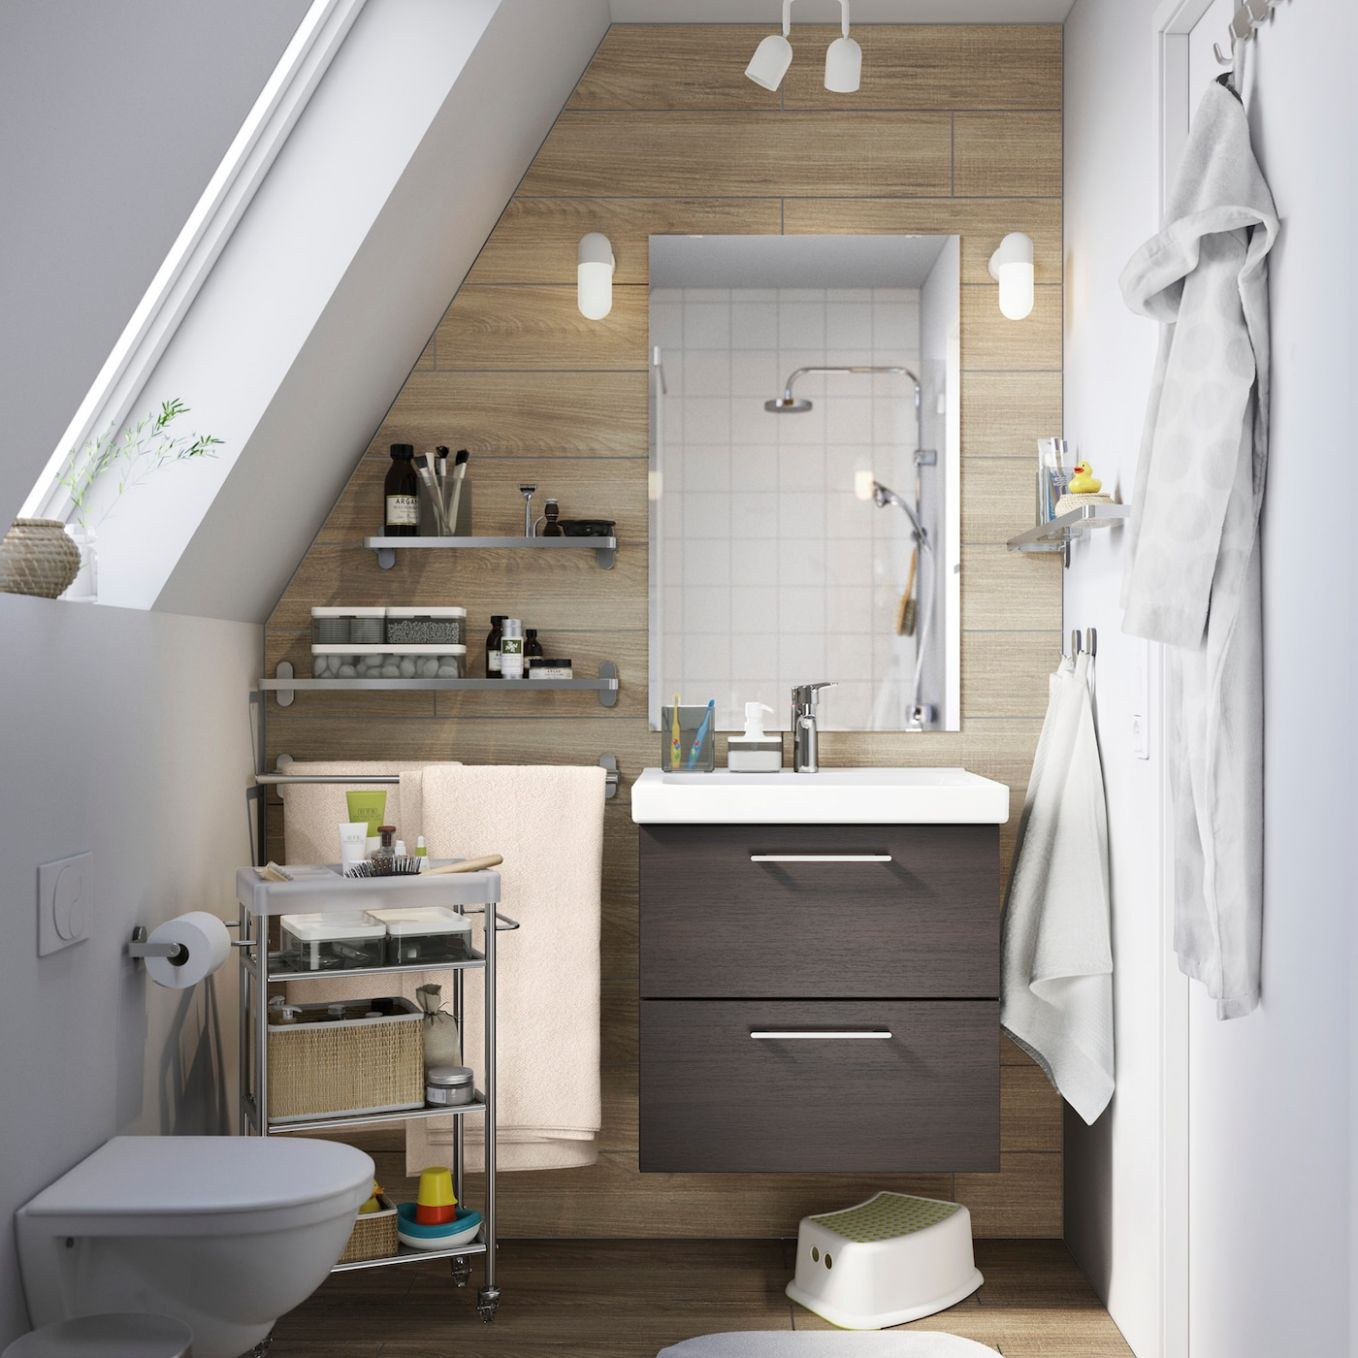 Bathroom Design Gallery UAE - IKEA - laundry room ideas ikea